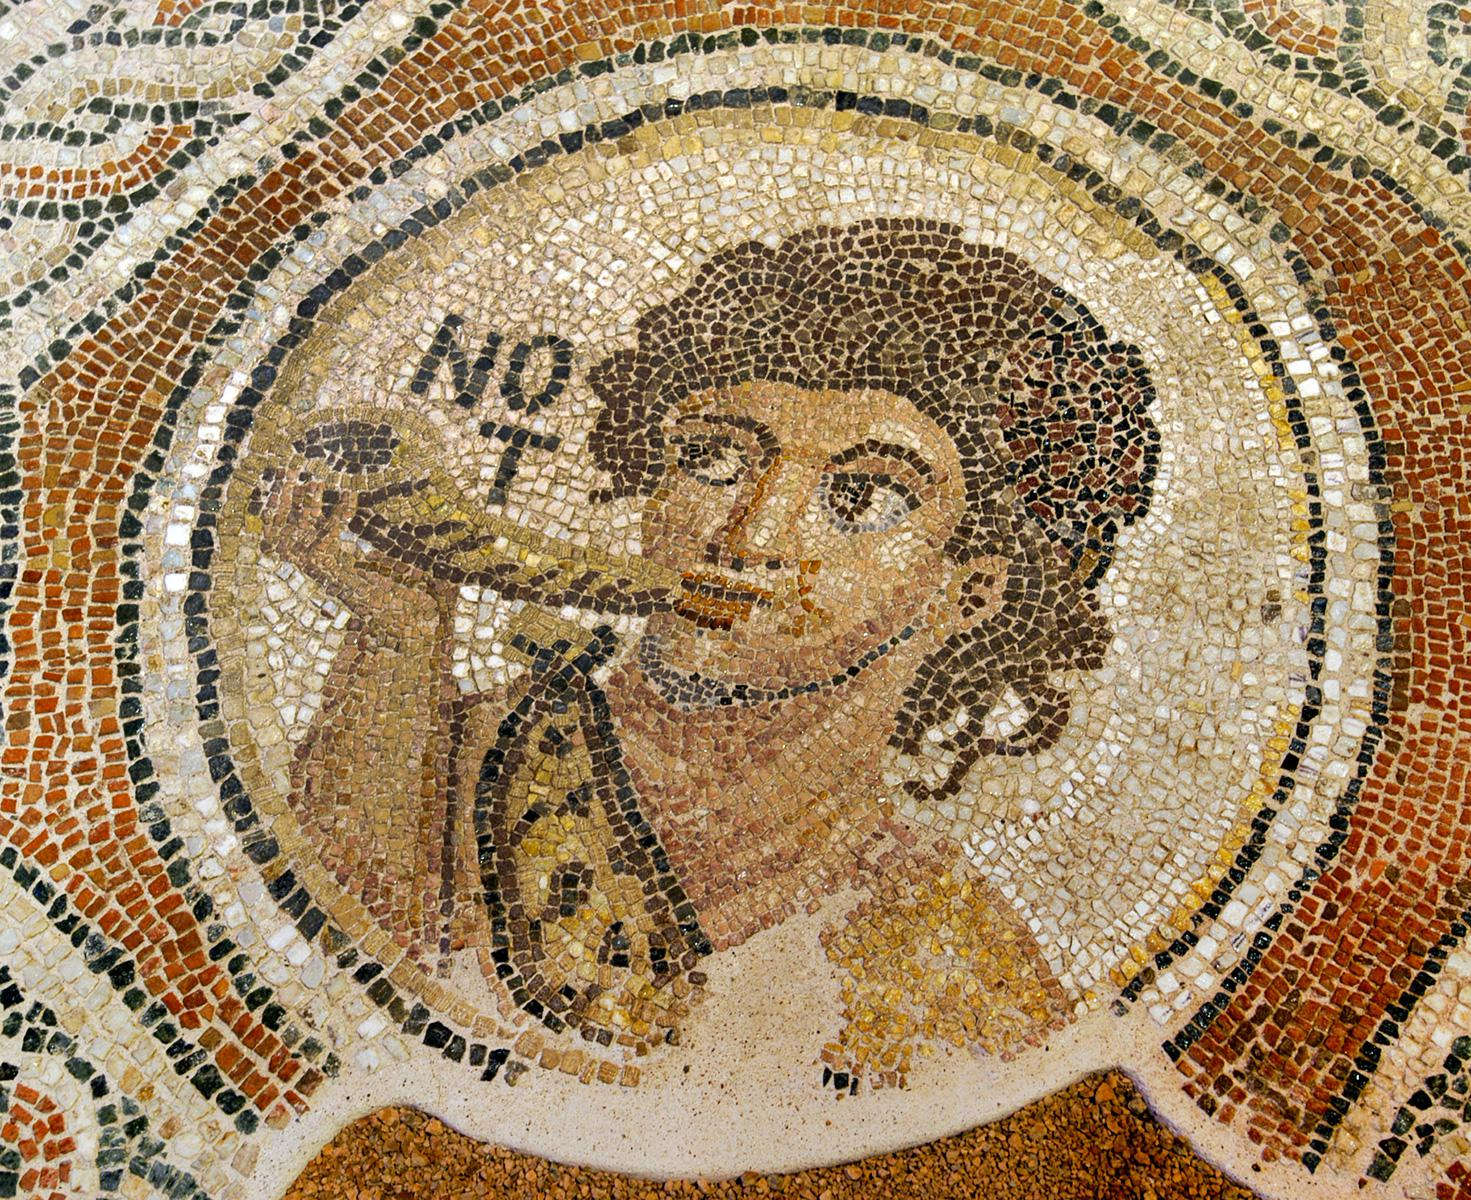 Detail of a mosaic floor with the south wind